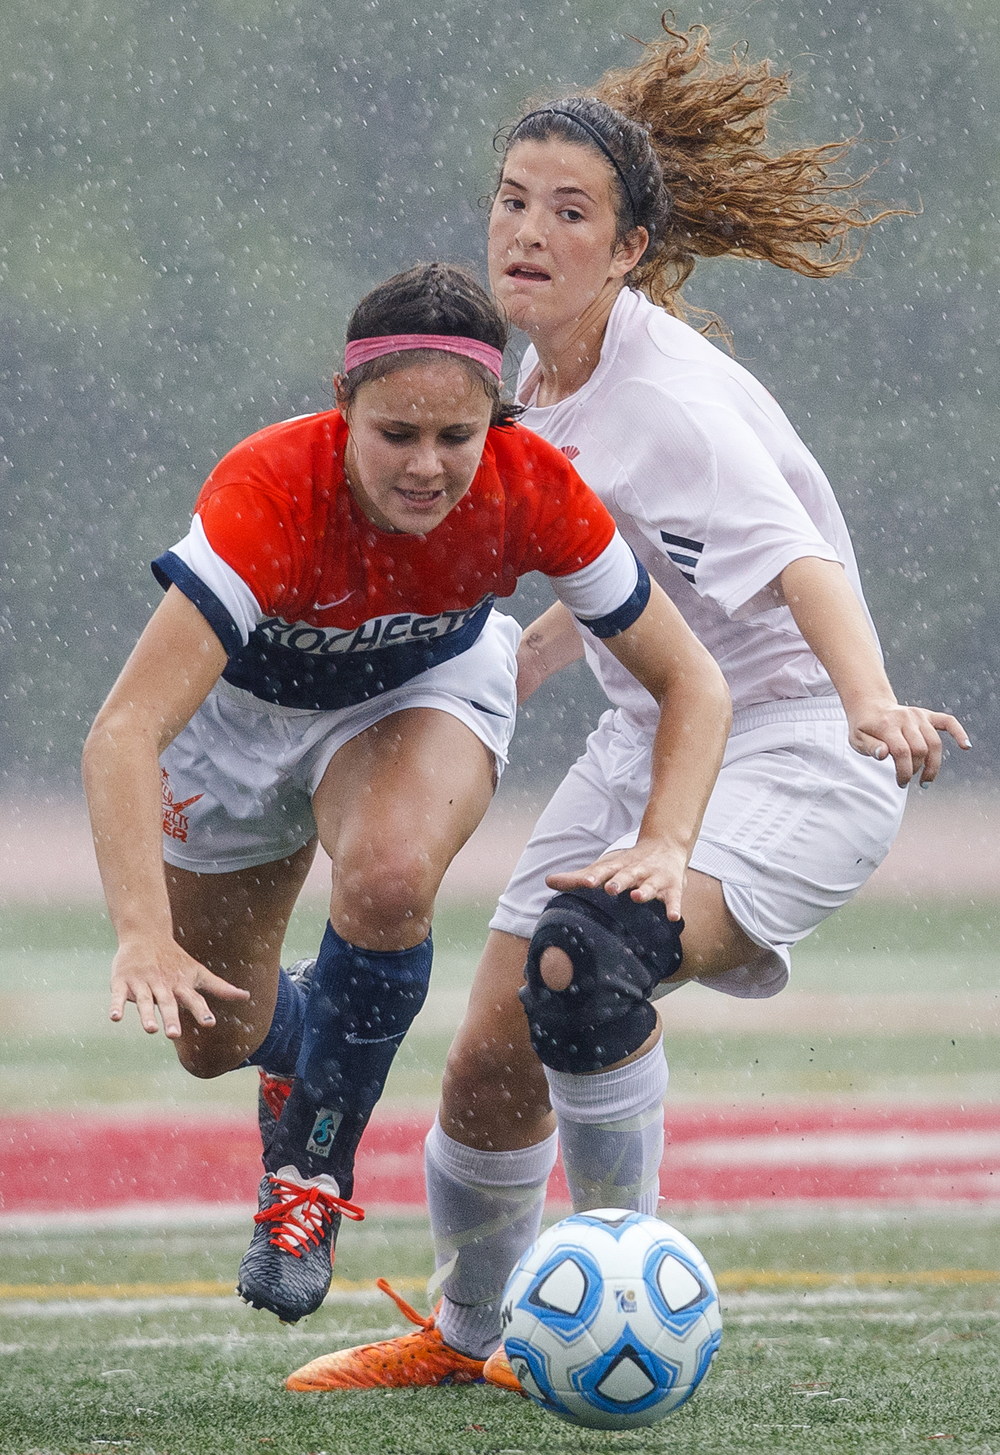 Rochester's Amanda Williams is tripped up by a Deerfield defender during the girls Class 2A Soccer State Championship at at North Central College in Naperville, Ill., Saturday, June 4, 2016. Ted Schurter/The State Journal-Register